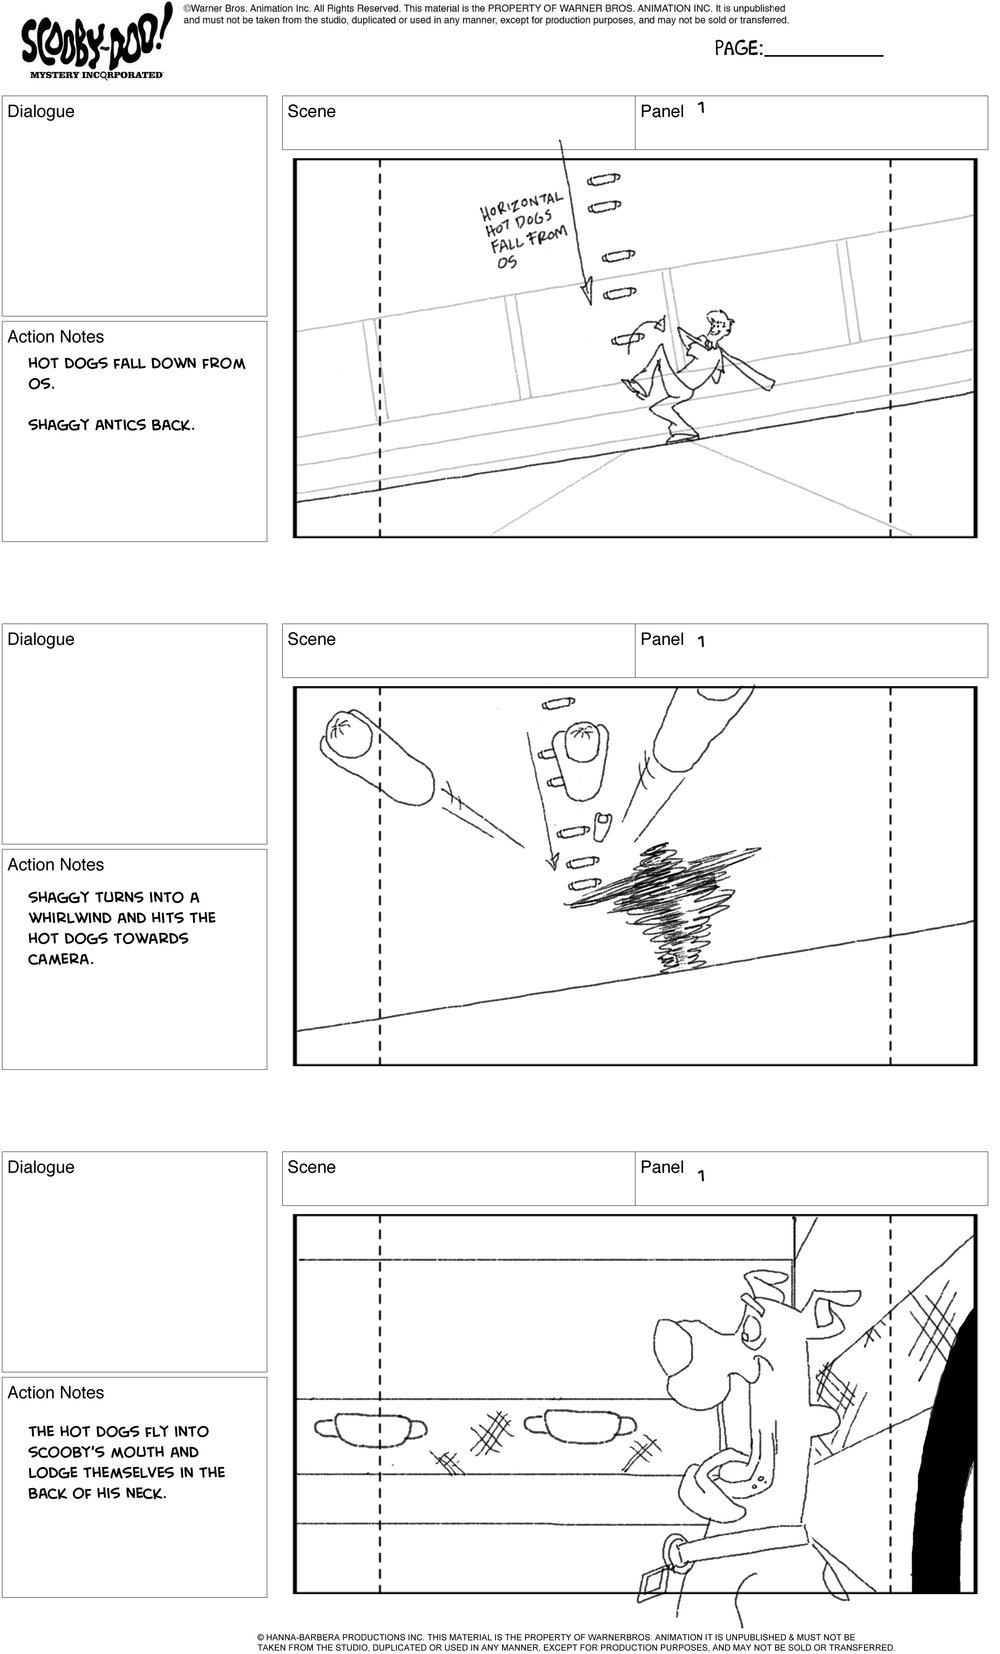 Scooby Storyboard page 20.jpg